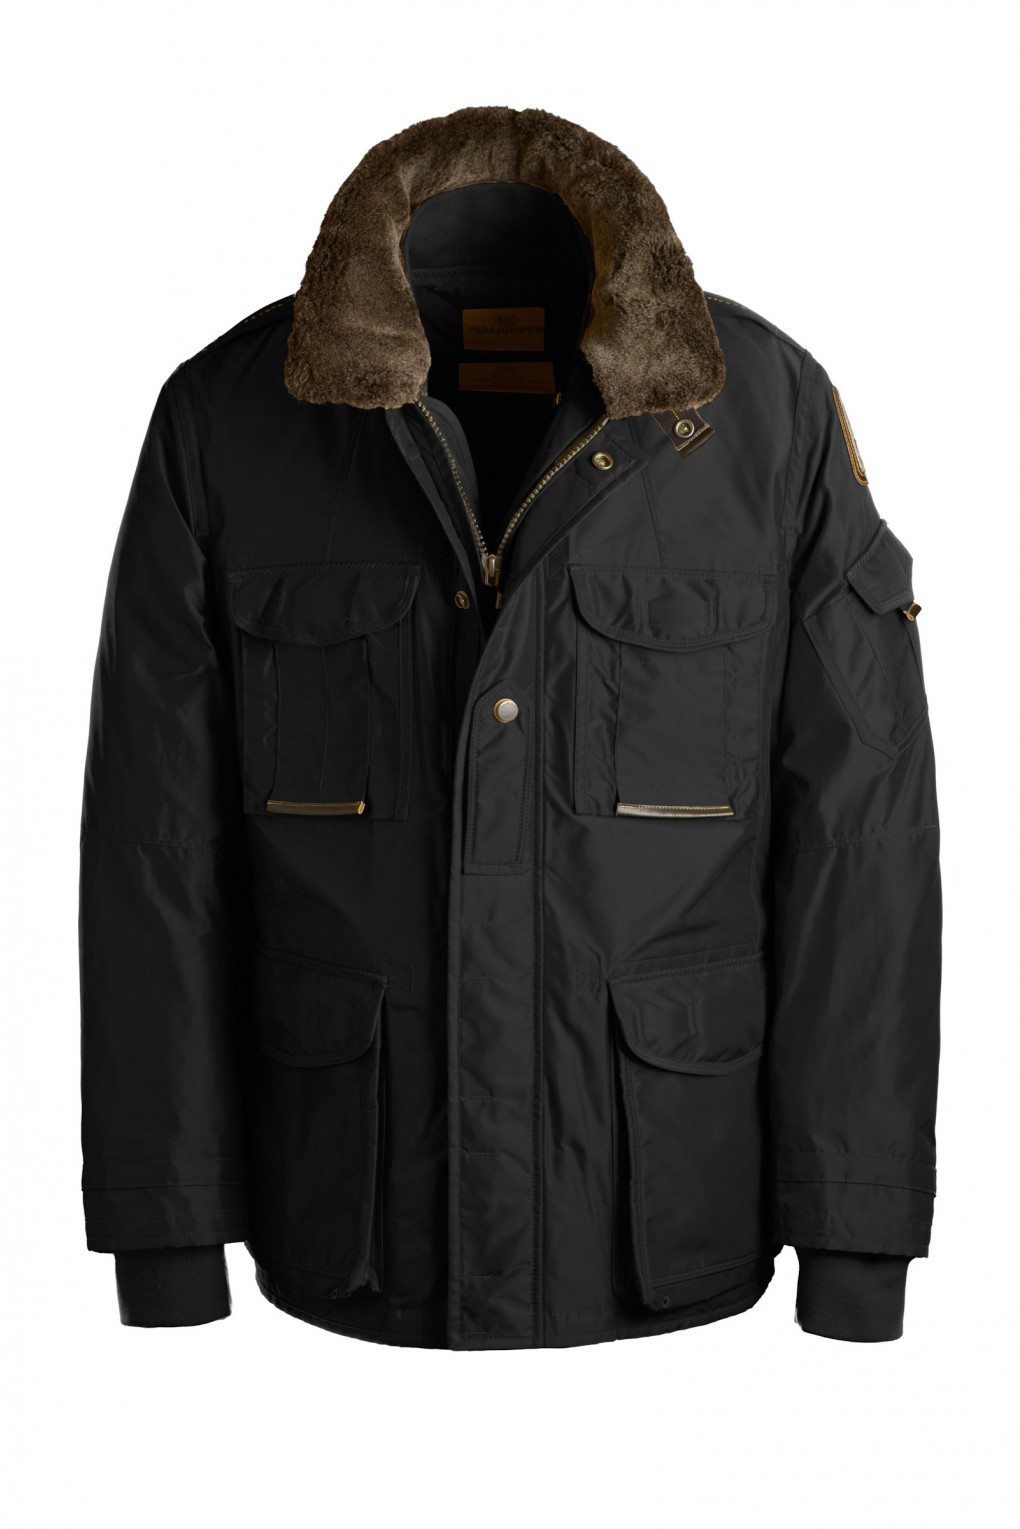 parajumpers PORTLAND man outerwear Black